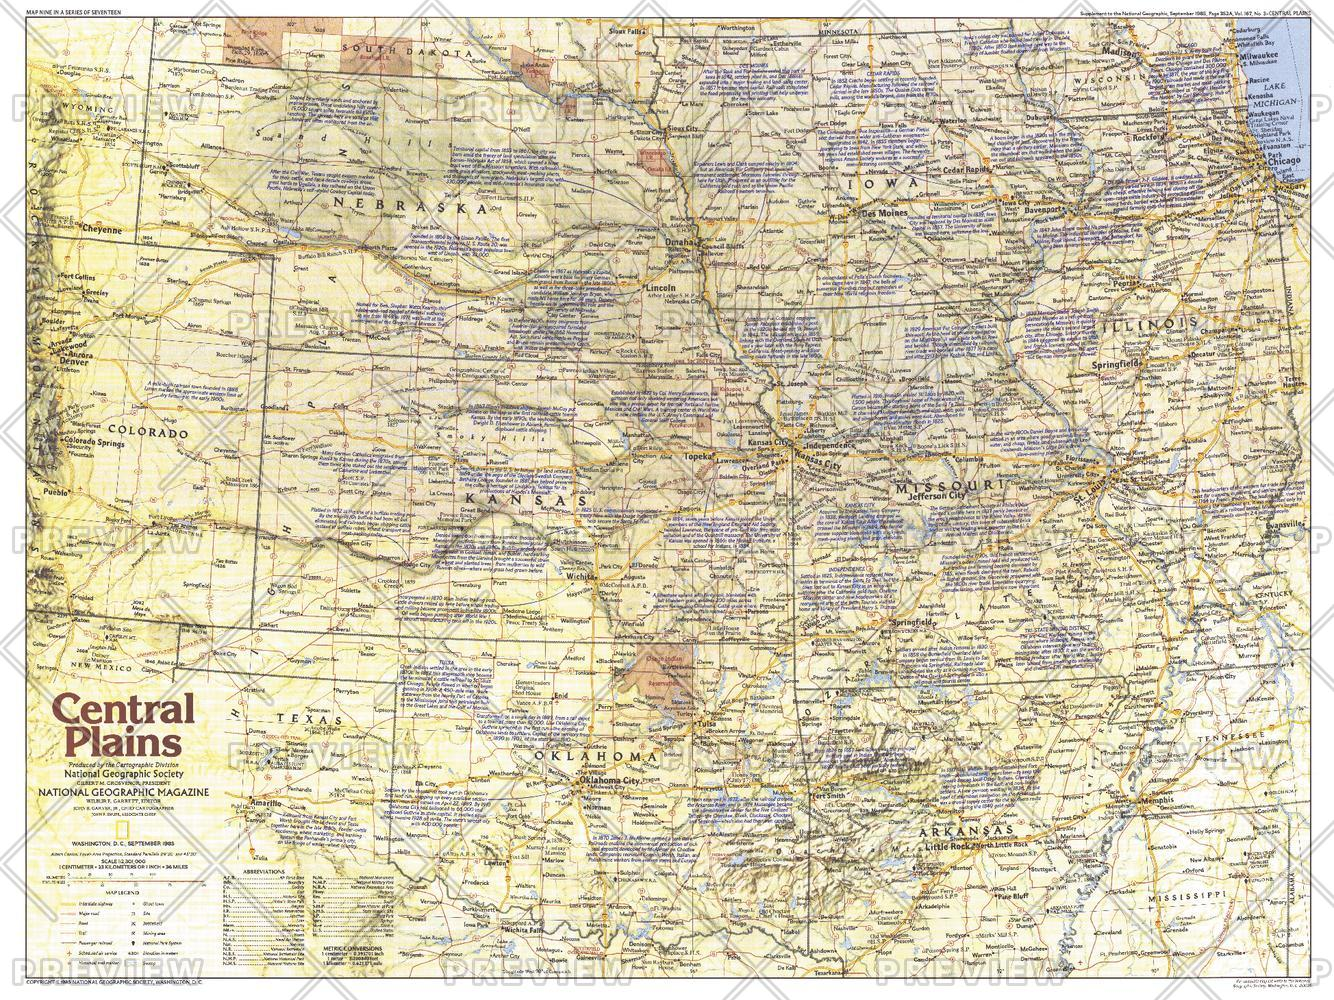 Central Plains Map Side 1 - Published 1985